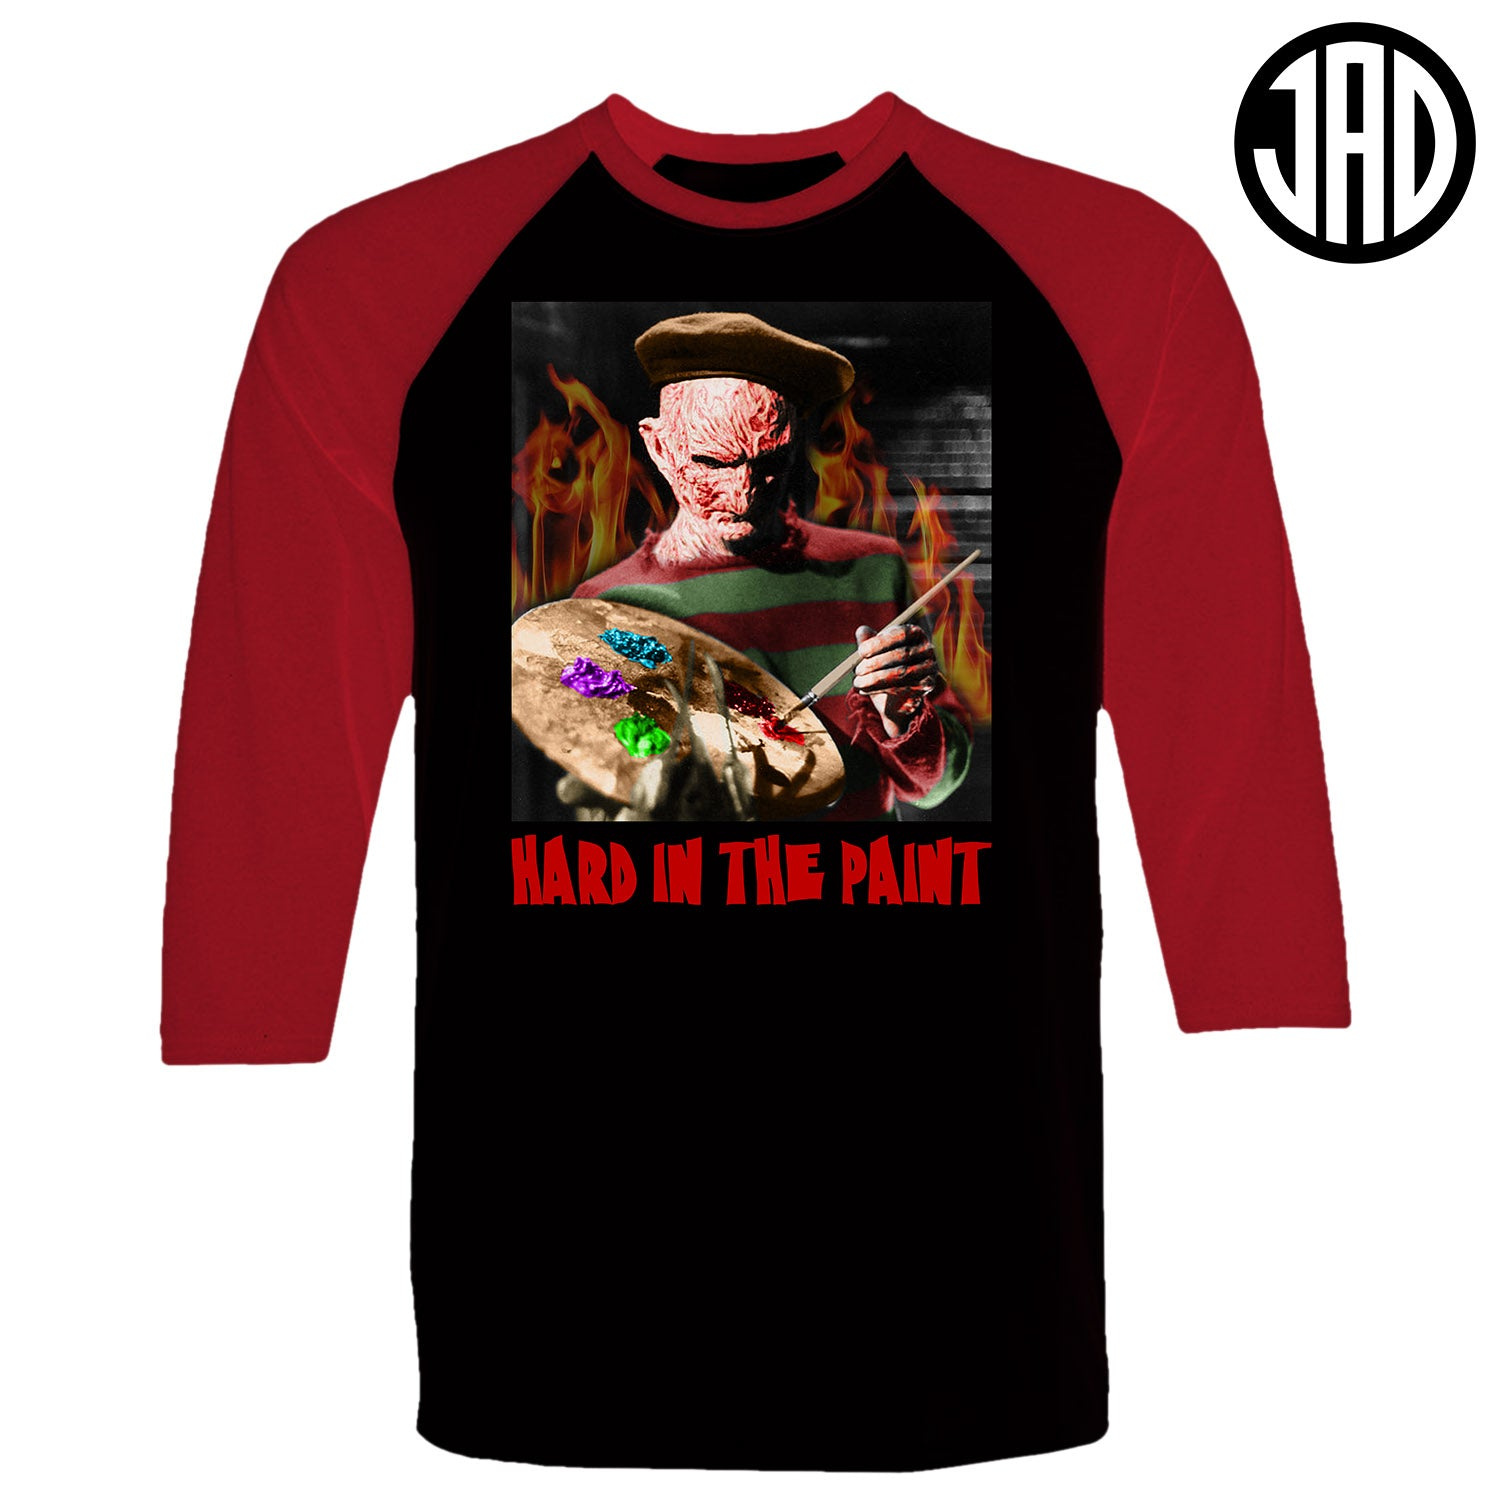 Hard In The Paint - Men's (Unisex) Baseball Tee